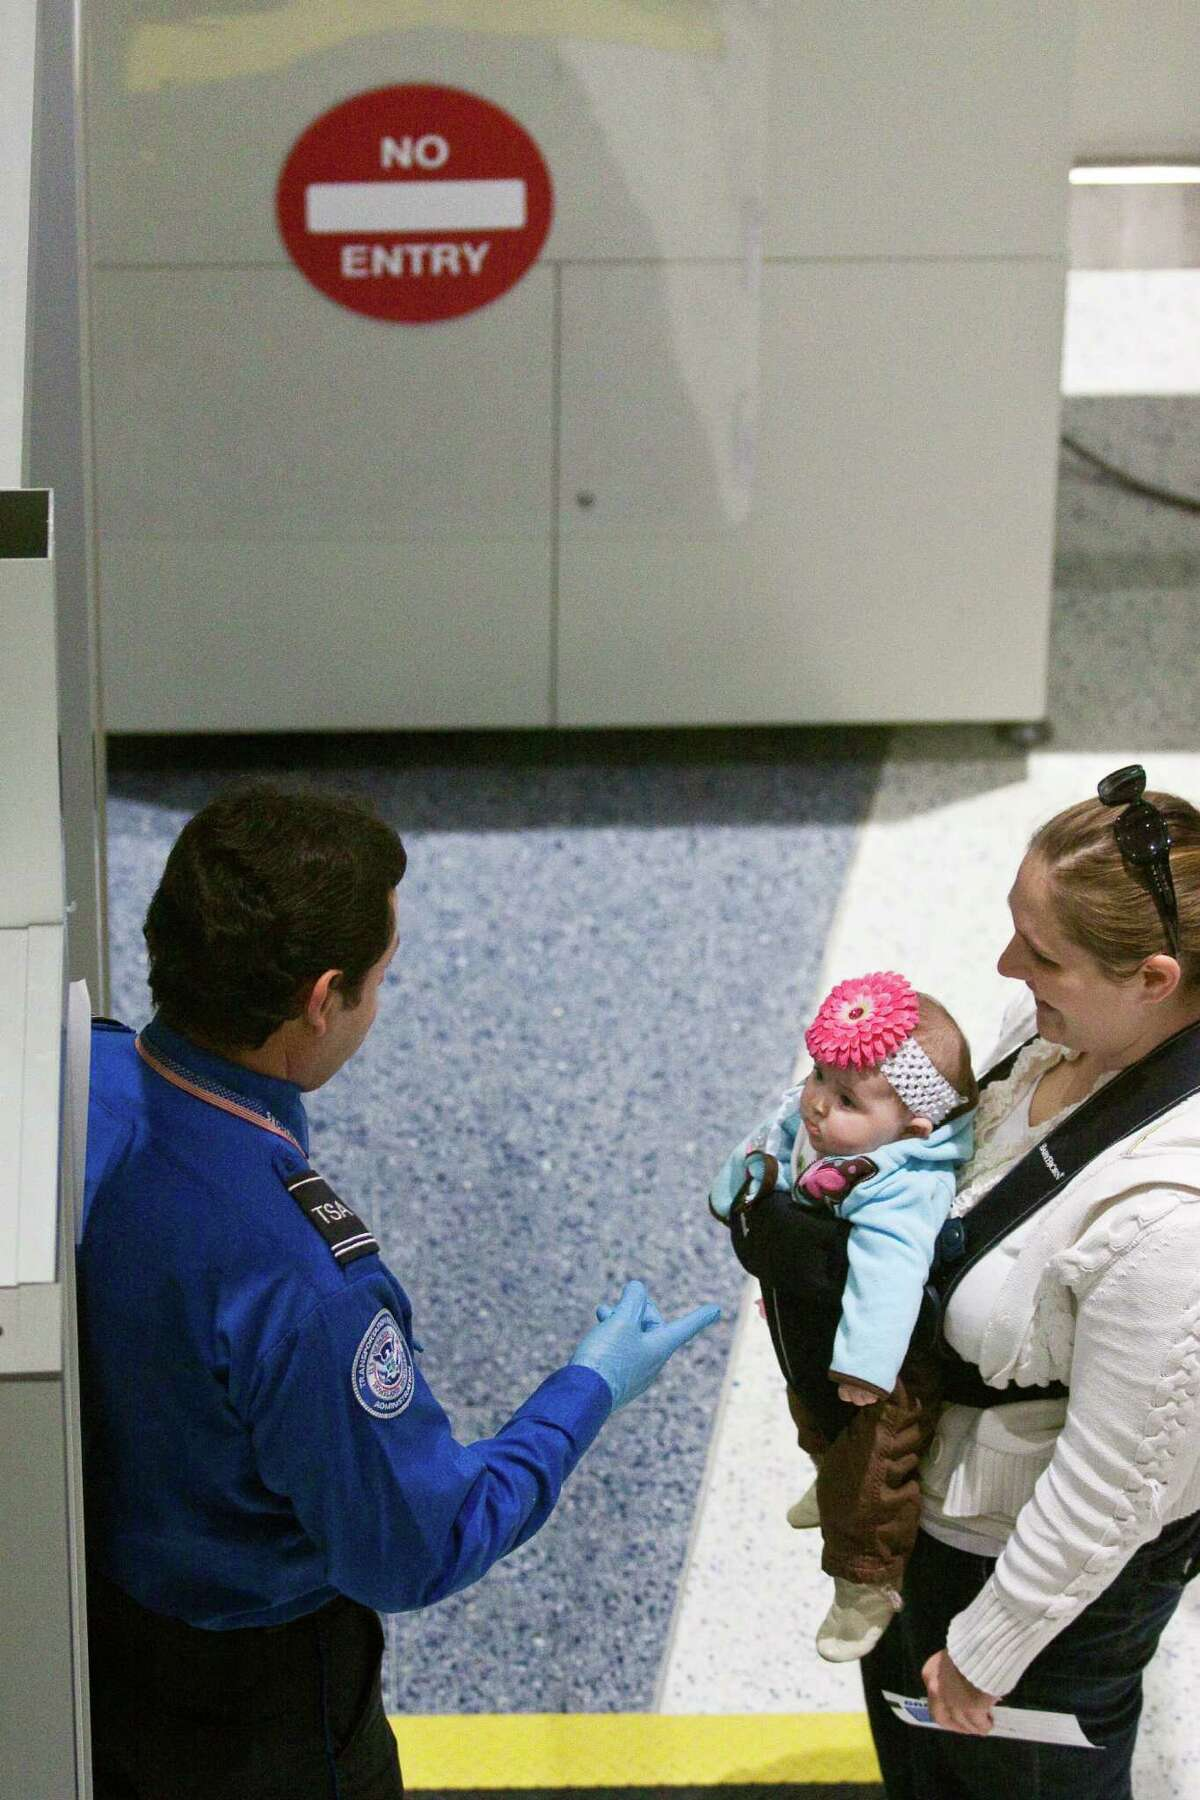 Dec. 27, 2009 - Houston, Texas, USA - A TSA officer points to a baby at a security checkpoint at Bush International Airport following Sheila Jackson Lee's press conference at Bush International Airport regarding the recent attempt at airline terrorism in Detroit, Dec. 27, 2009 in Houston.